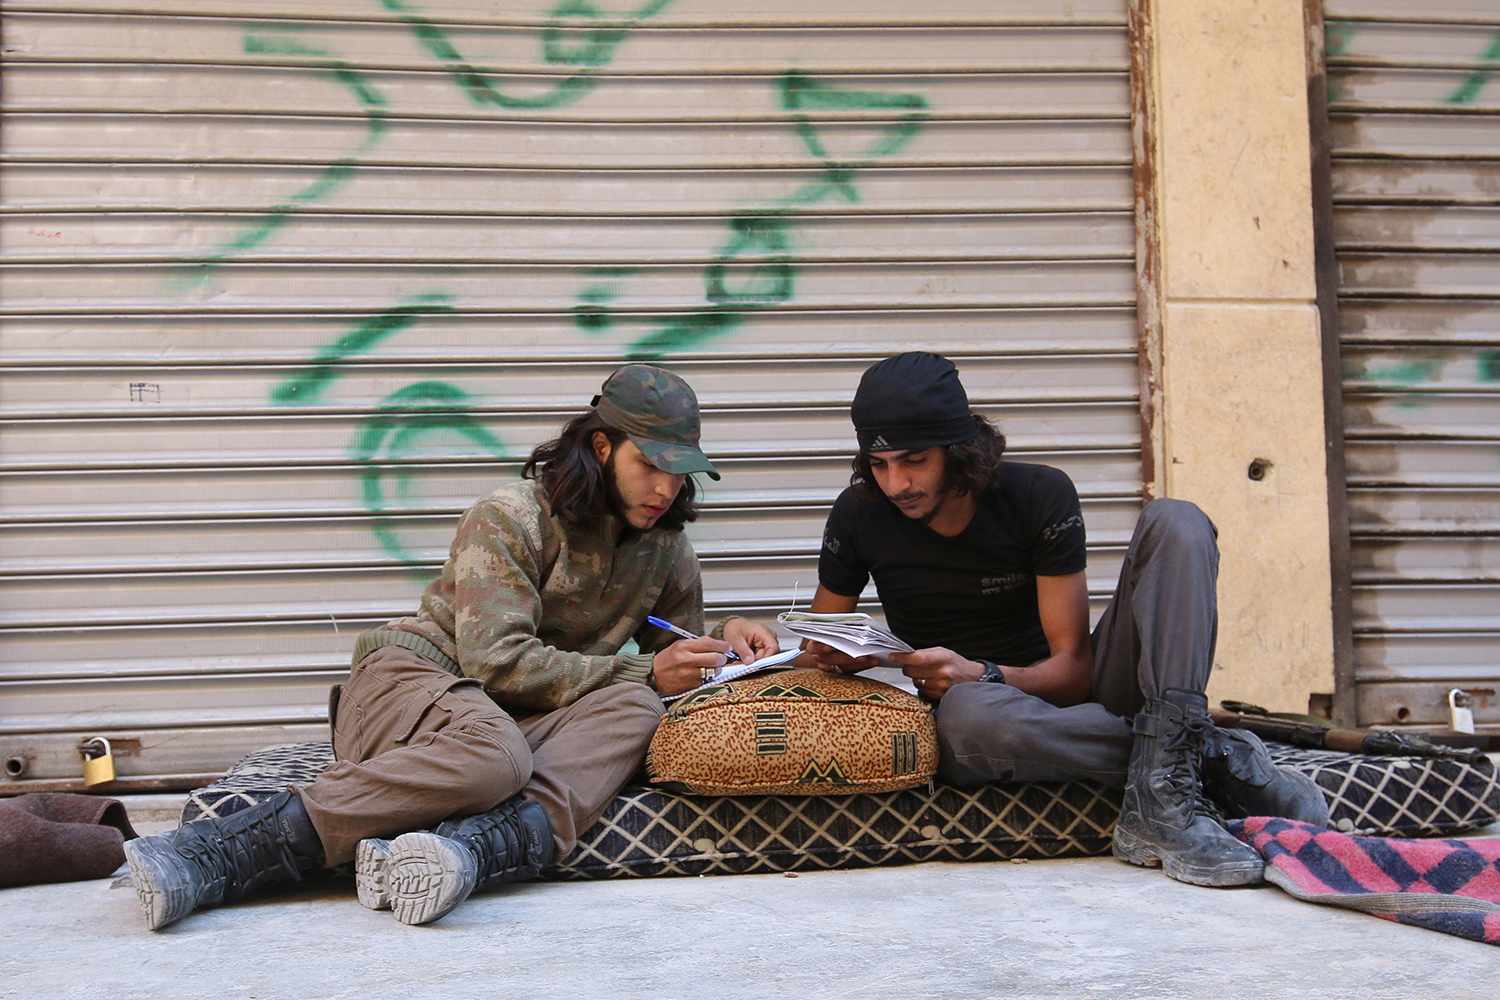 ALEPPO 2016-09-27 A Free Syrian Army fighter writes on a notebook as he sits with his fellow fighter in the rebel-held al-Myassar neighbourhood of Aleppo, Syria, September 27, 2016. REUTERS/Abdalrhman Ismail Photo: / REUTERS / TT / kod 72000